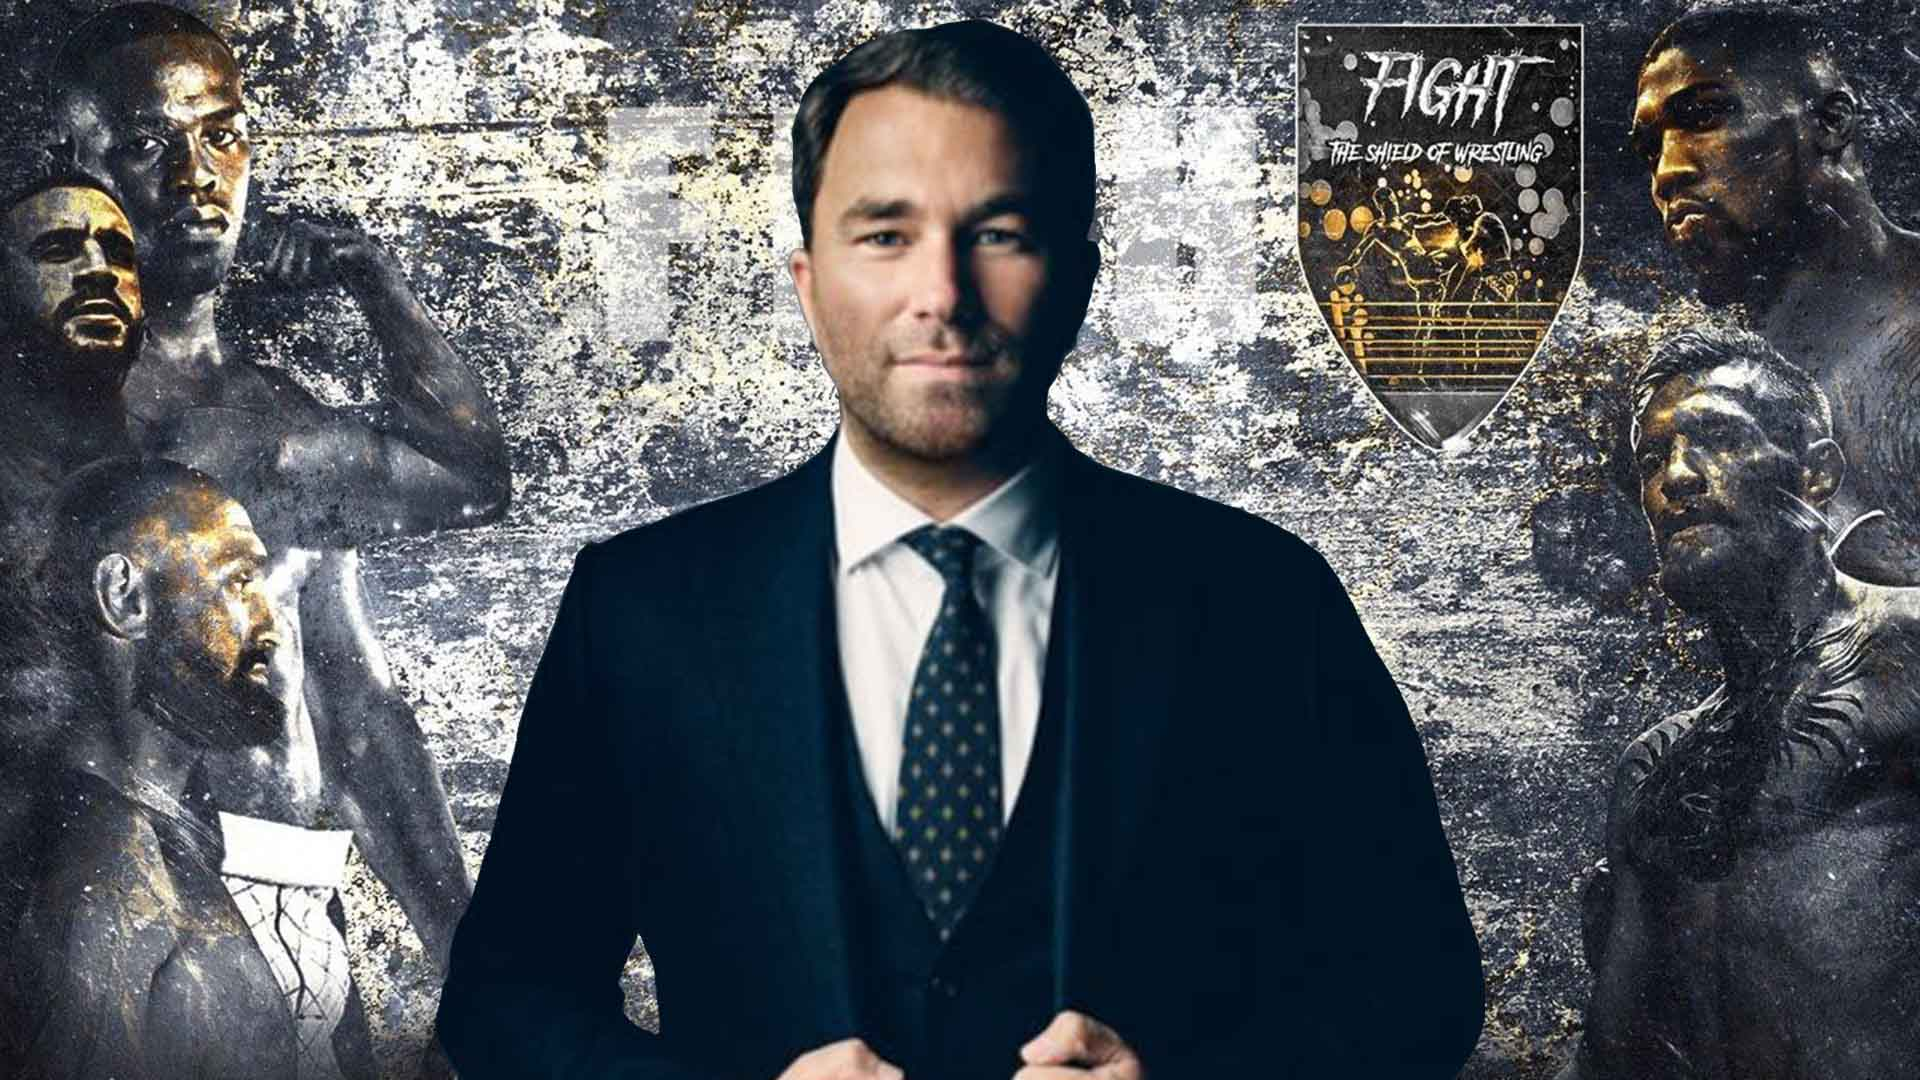 Eddie Hearn: 3 o 4 alternative per Joshua VS Fury